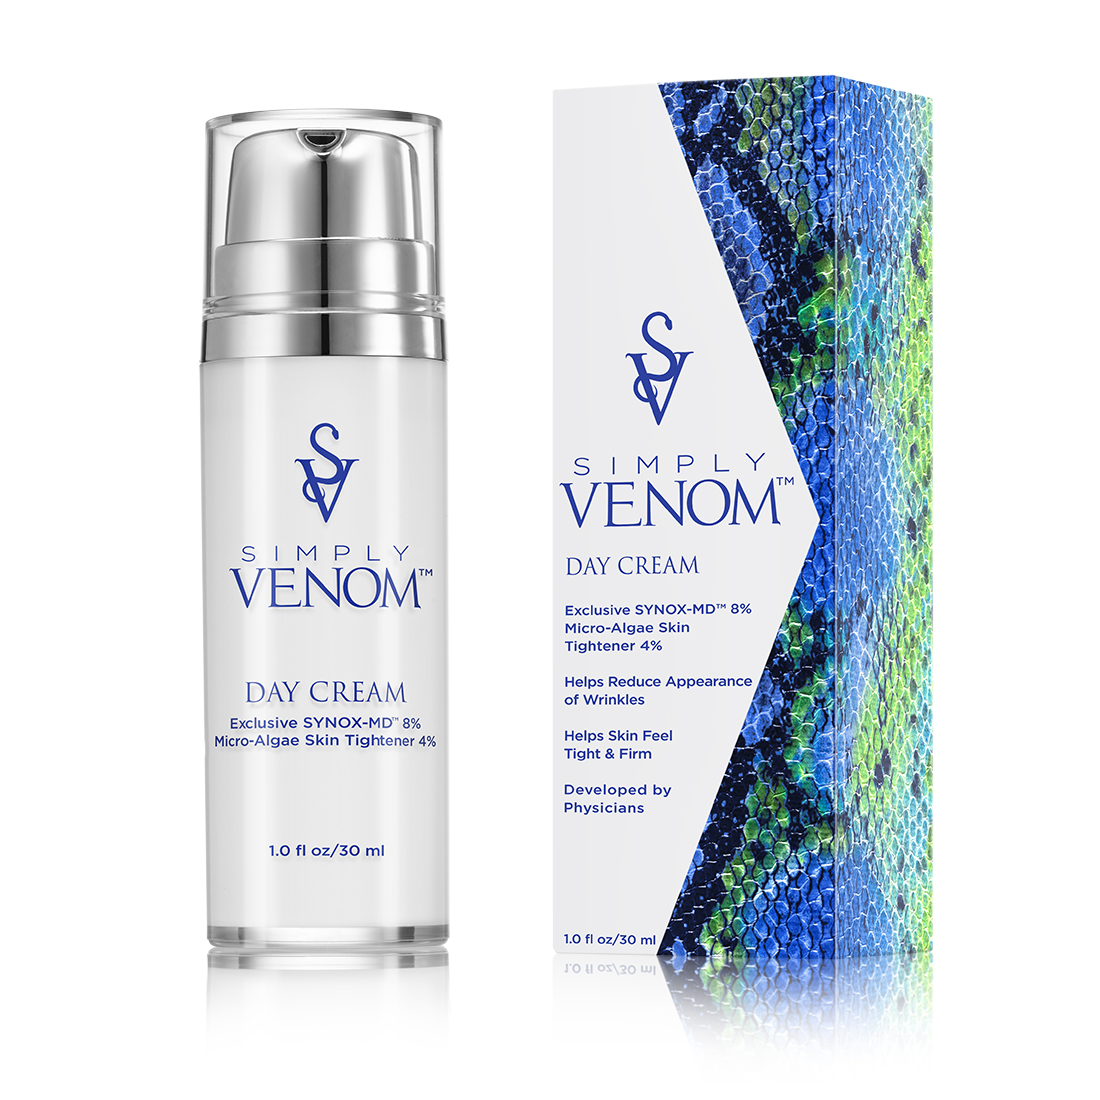 Image of Simply Venom Day Cream